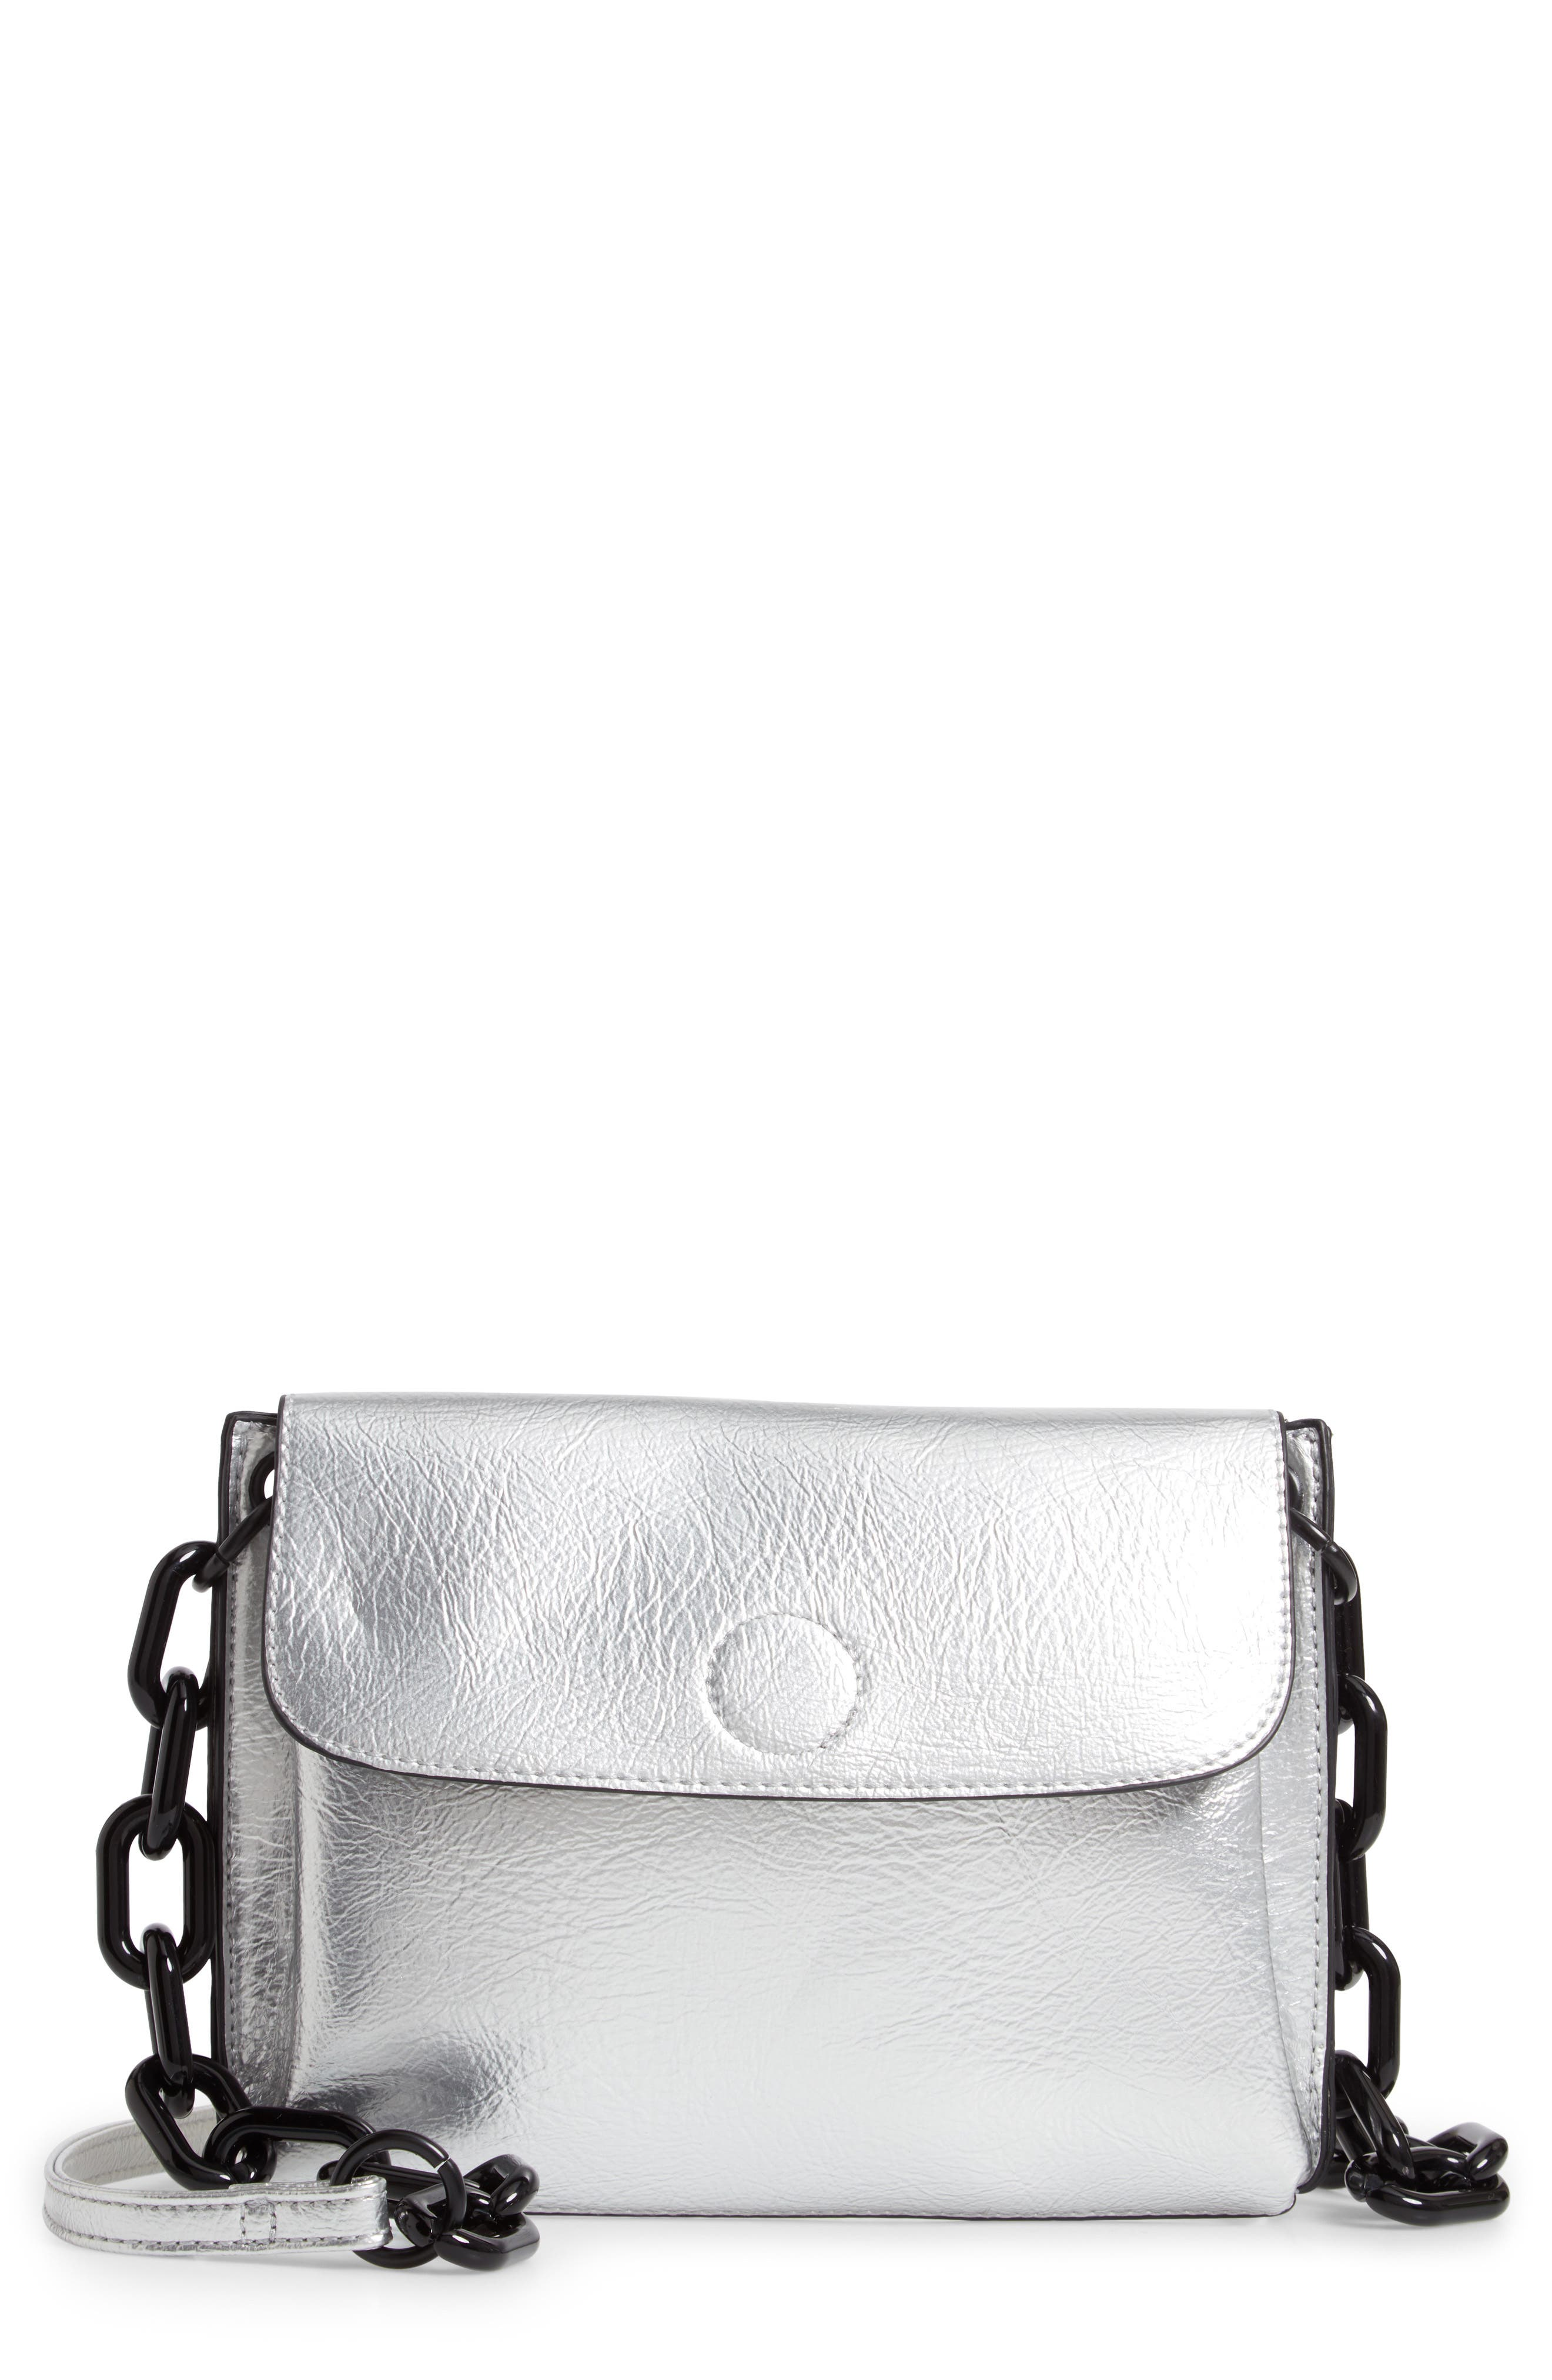 VIOLET RAY NEW YORK Metallic Faux Leather Crossbody Bag, Main, color, SILVER